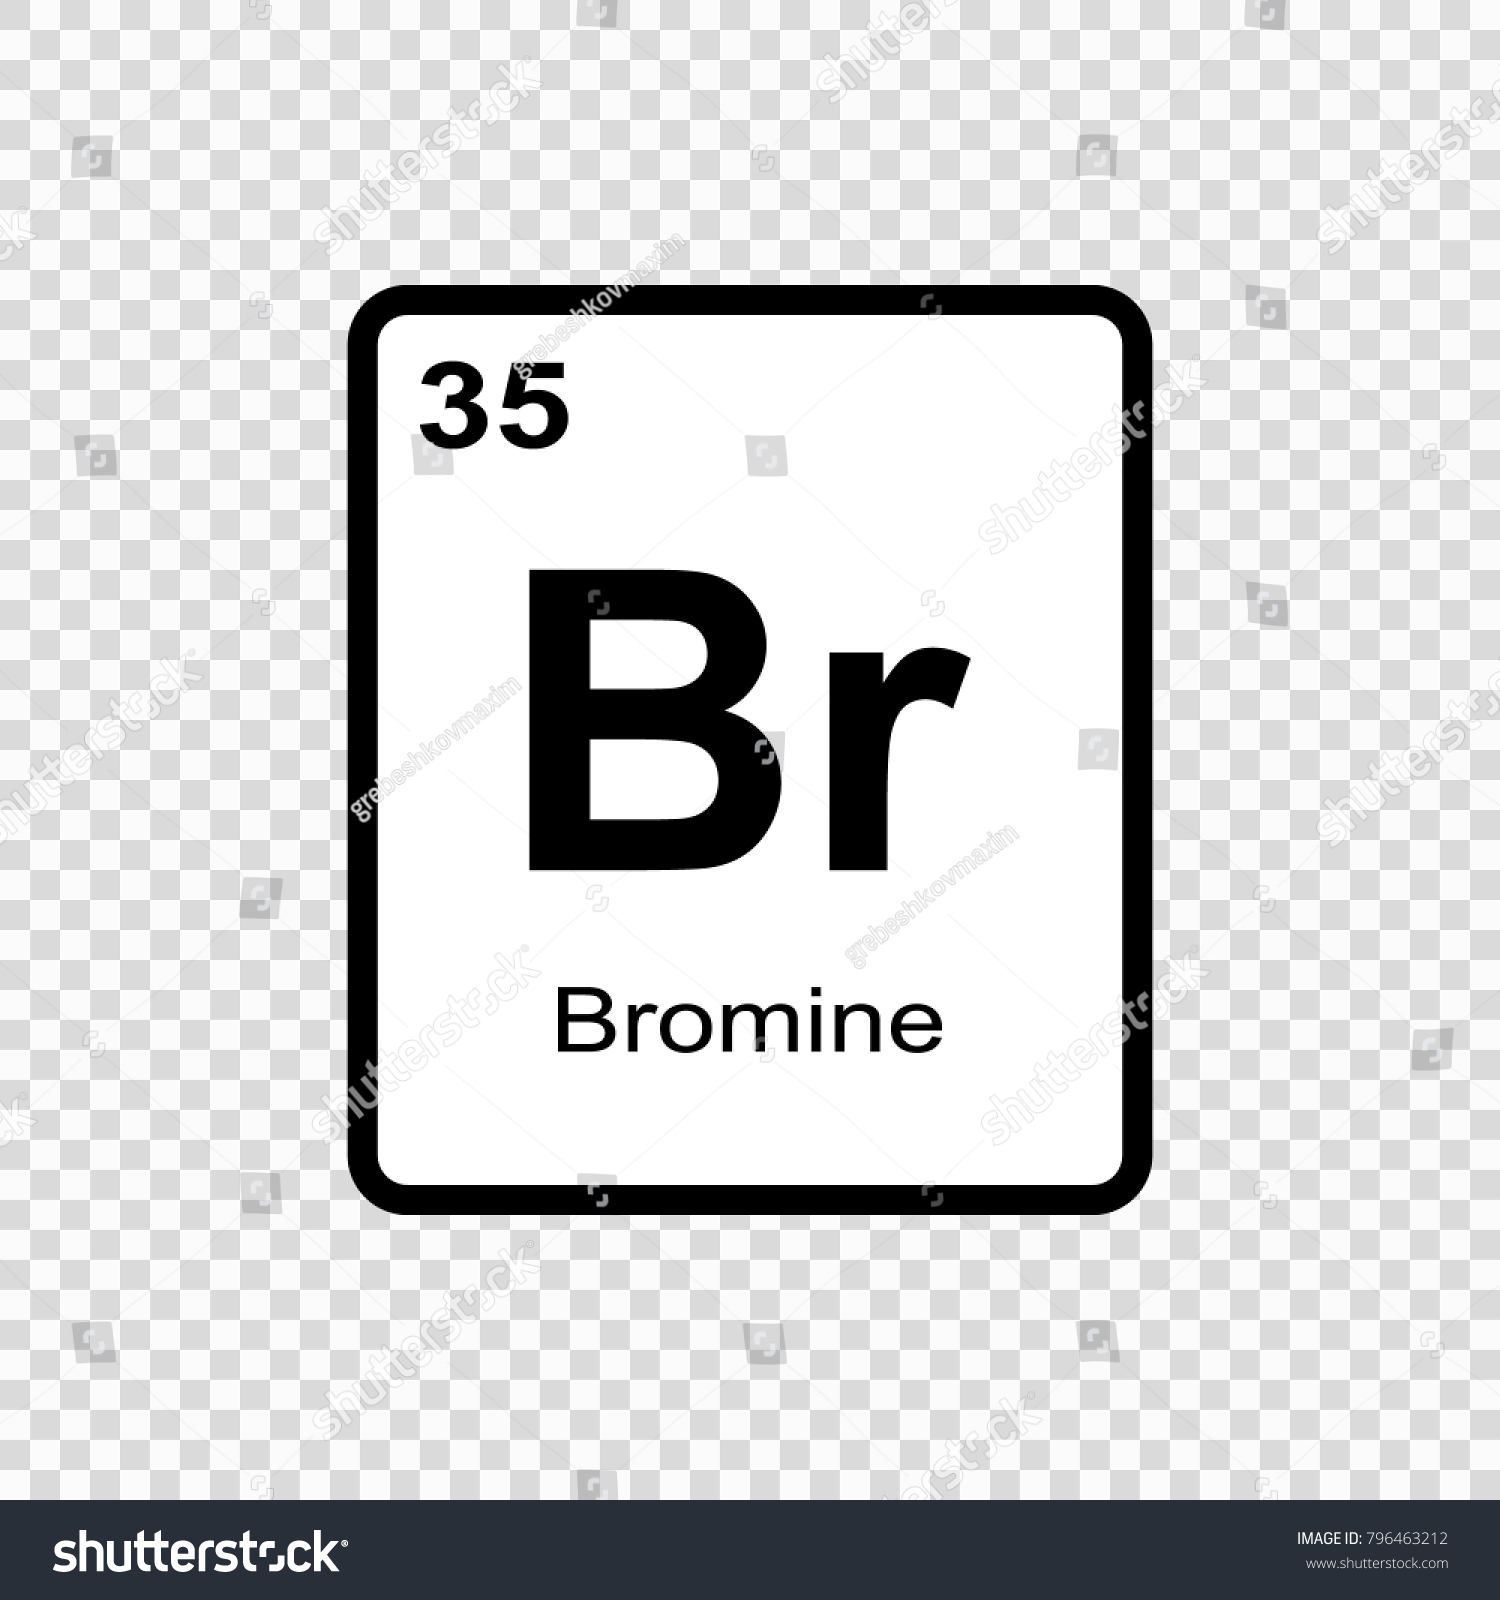 Bromine chemical element sign atomic number stock vector 796463212 bromine chemical element sign with atomic number chemical element of periodic table buycottarizona Choice Image